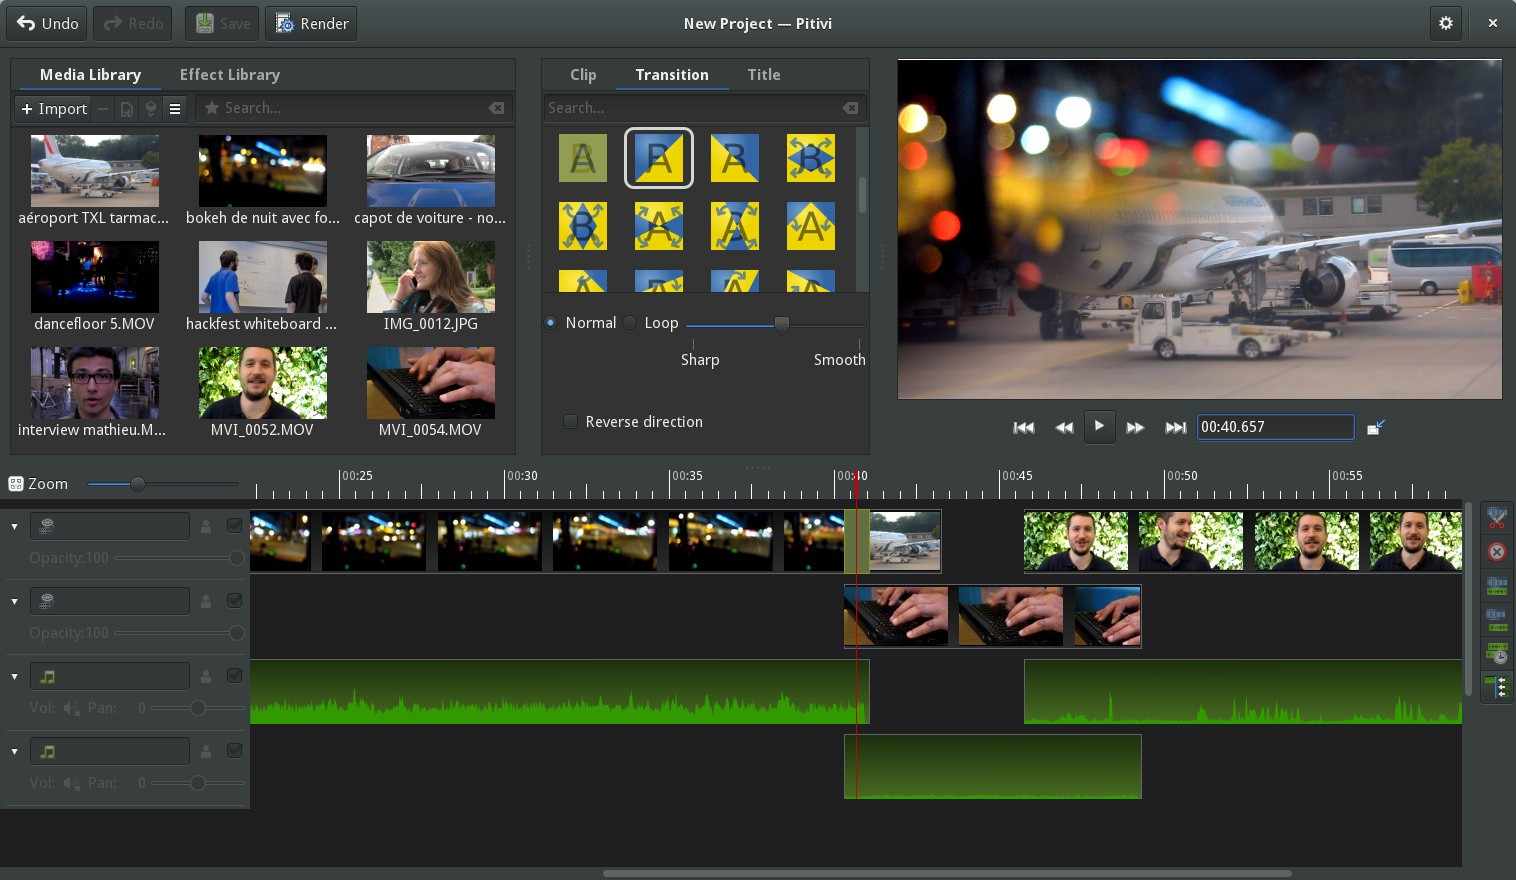 Pitivi 1.0 Open-Source Linux Video Editor Is Up to RC State, Download as Flatpak